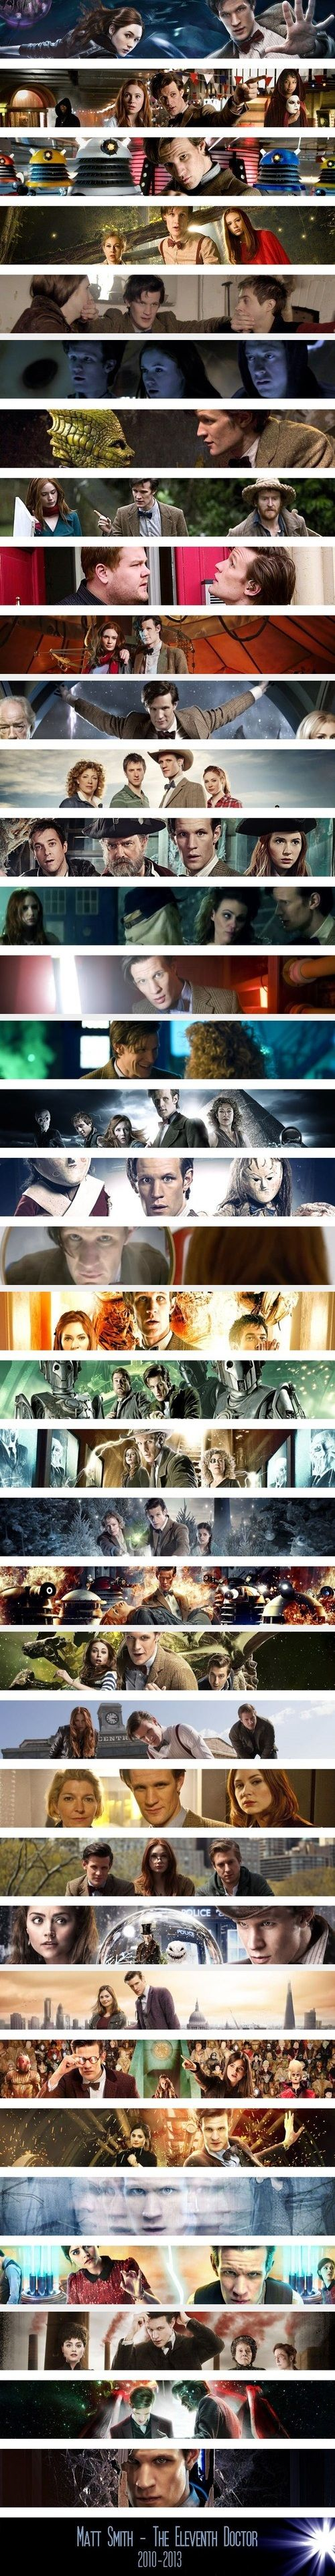 "So sad to see him leaving, one of my favorite pictures is a of Eccleston, Tennant, and Smith next to each is ""the one who introduced you to the Doctor"" ""the one you fell in love with"" and ""the one who became your best friend."" So true!!"